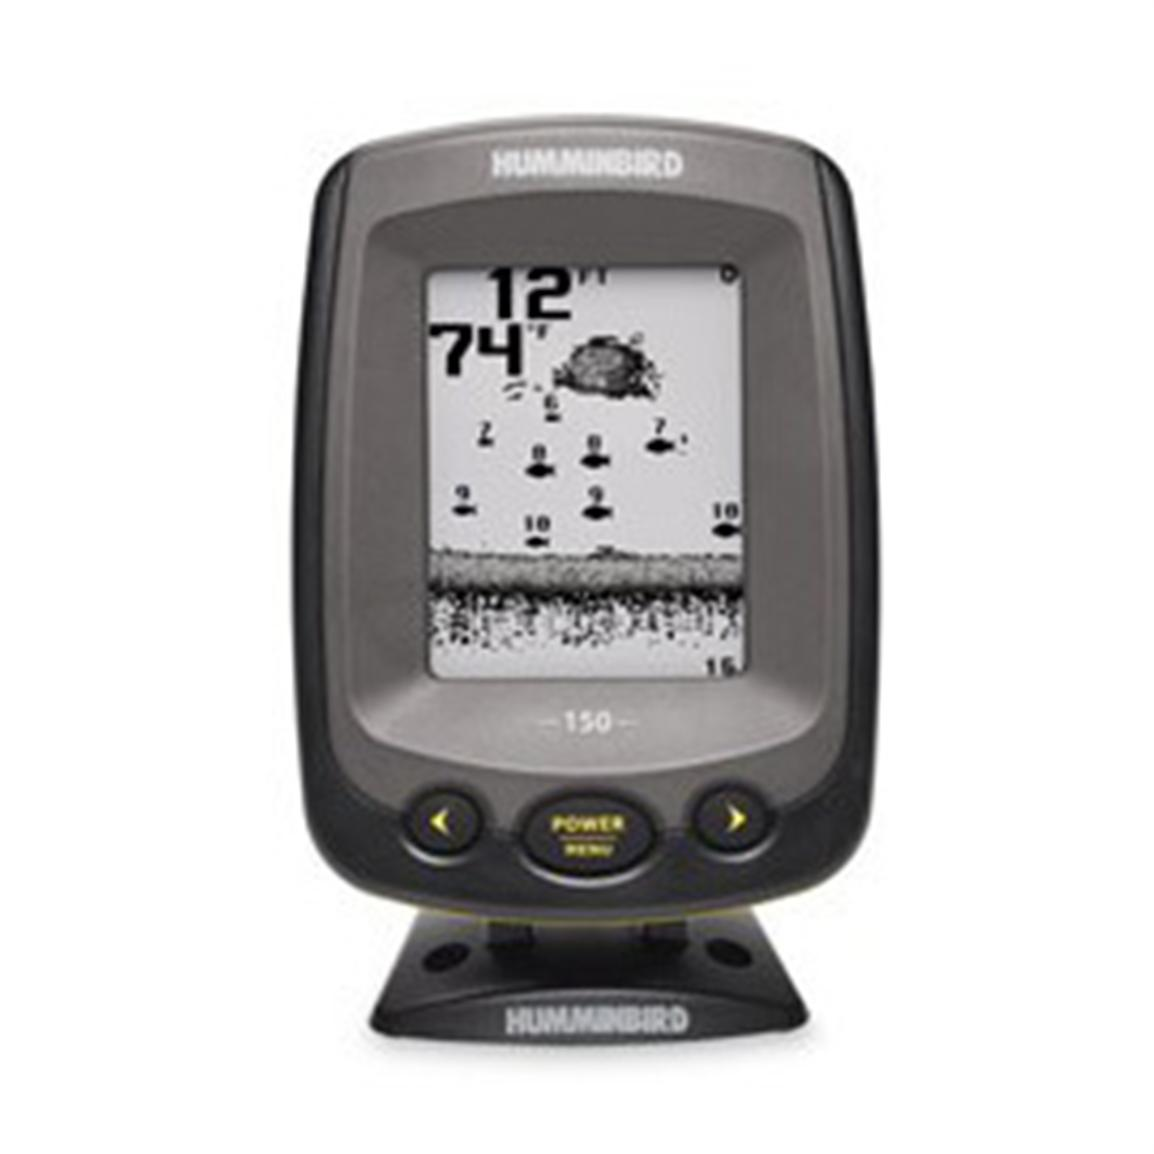 Humminbird piranhamax 150 fishfinder portable 162567 for Piranha fish finder